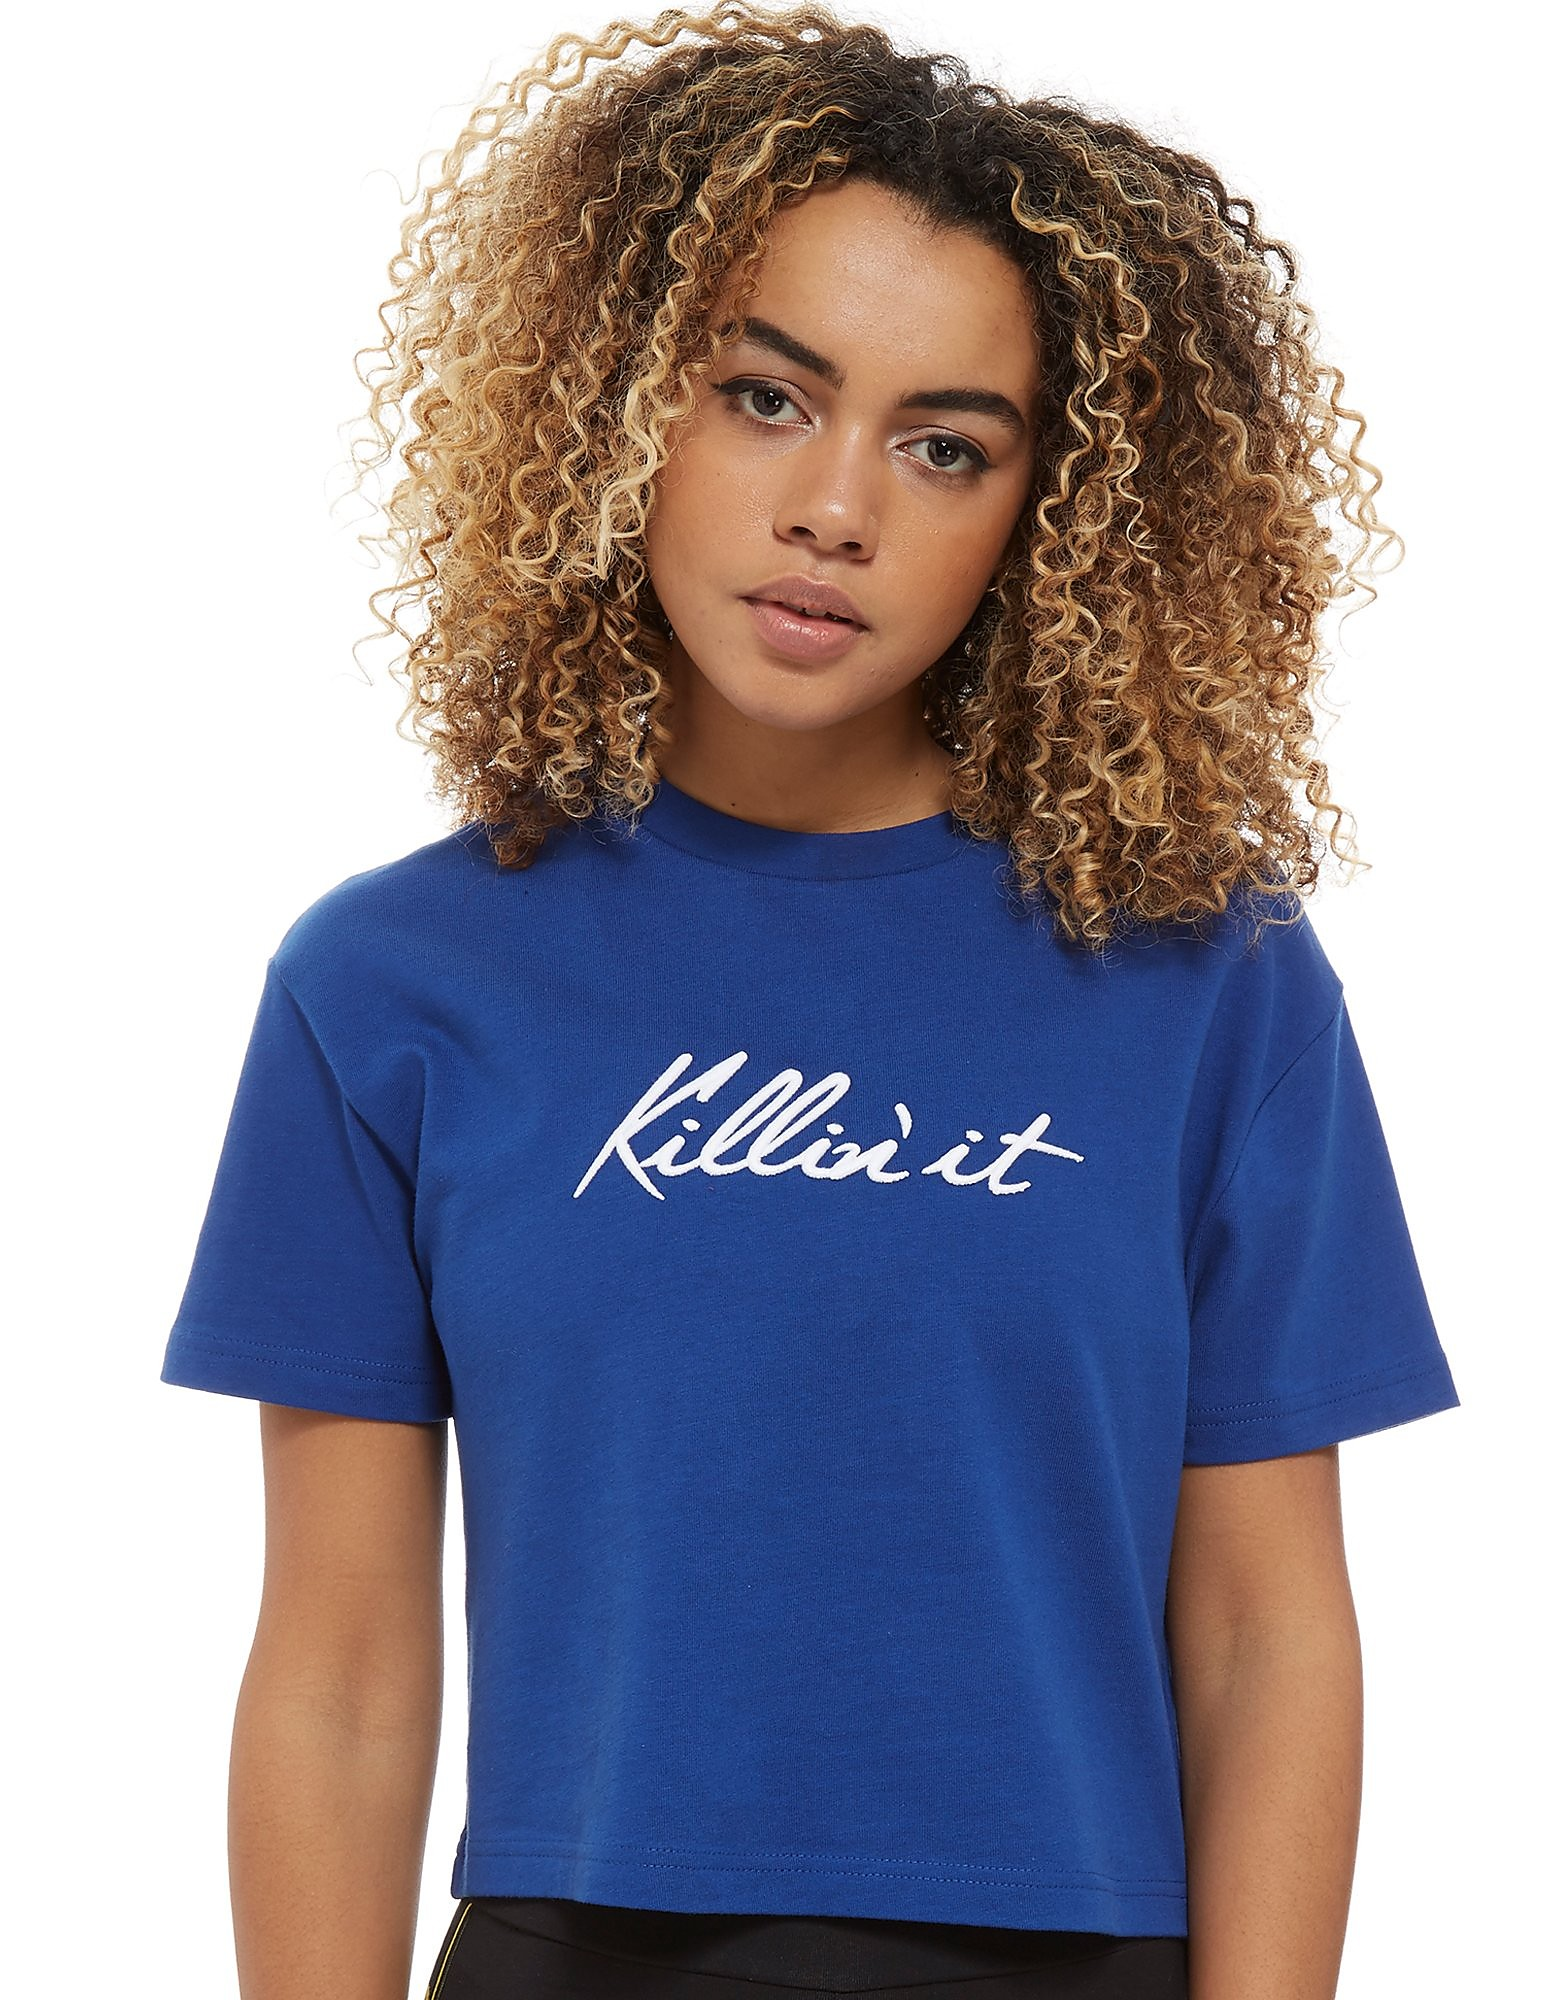 Supply & Demand Killing It T-Shirt